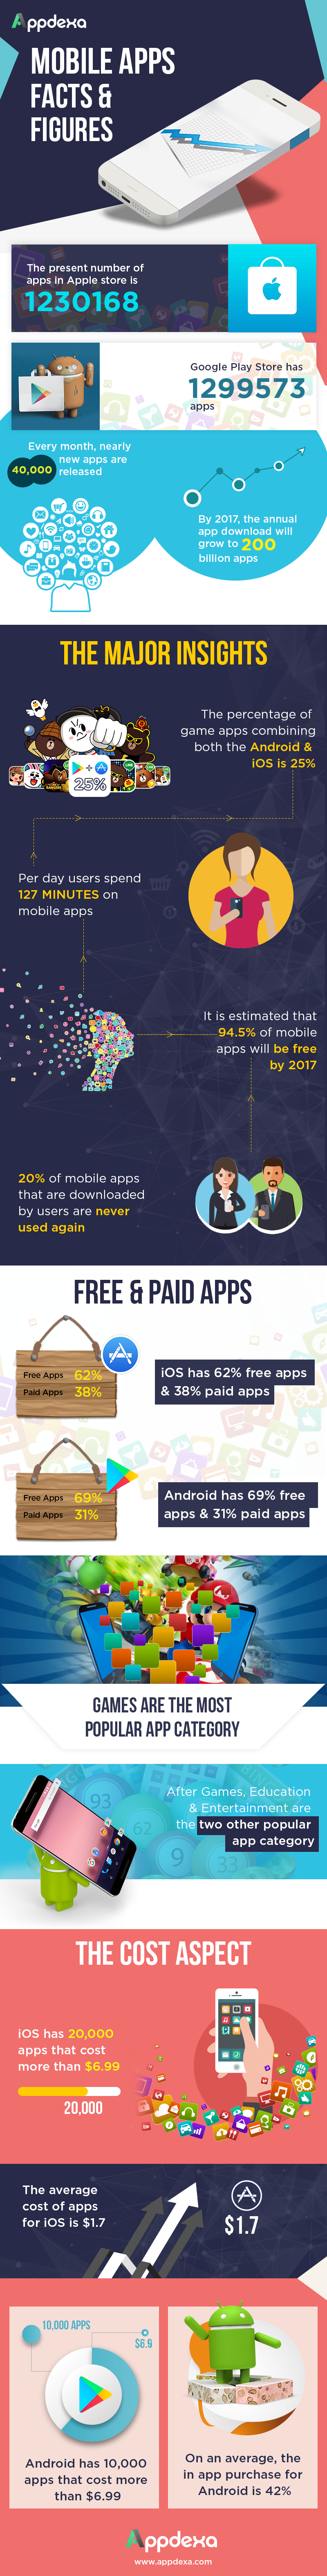 App Facts & Research